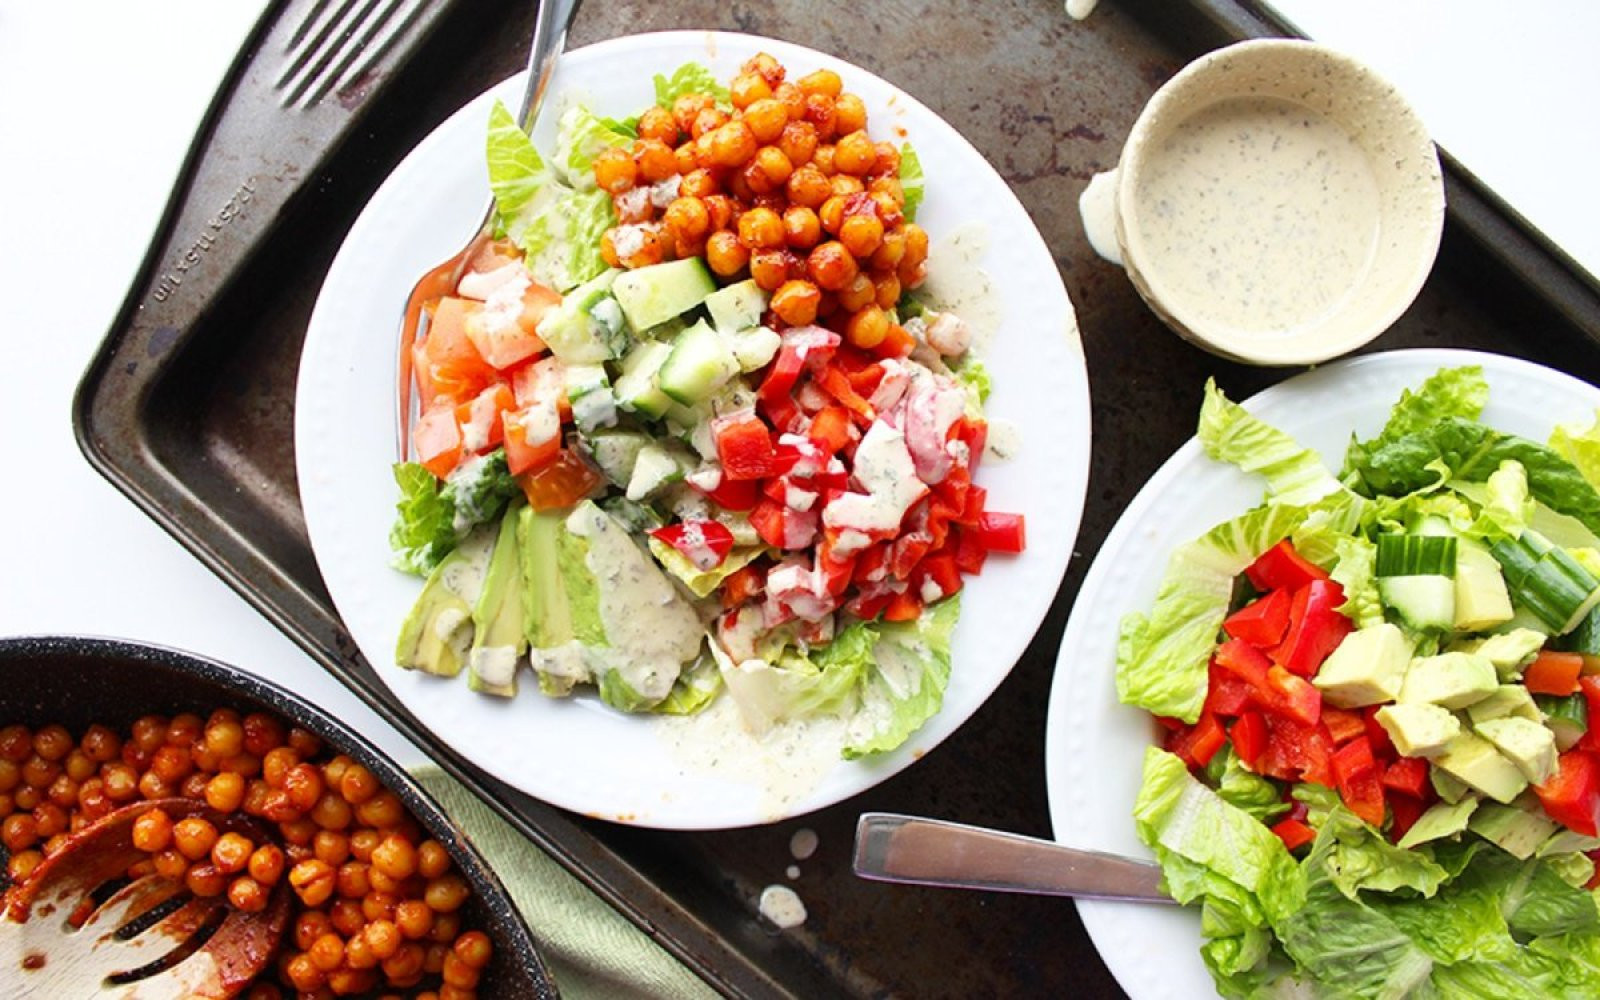 Barbecue Side Dishes  5 BBQ Side Dishes for Your Pre Summer Cookout e Green